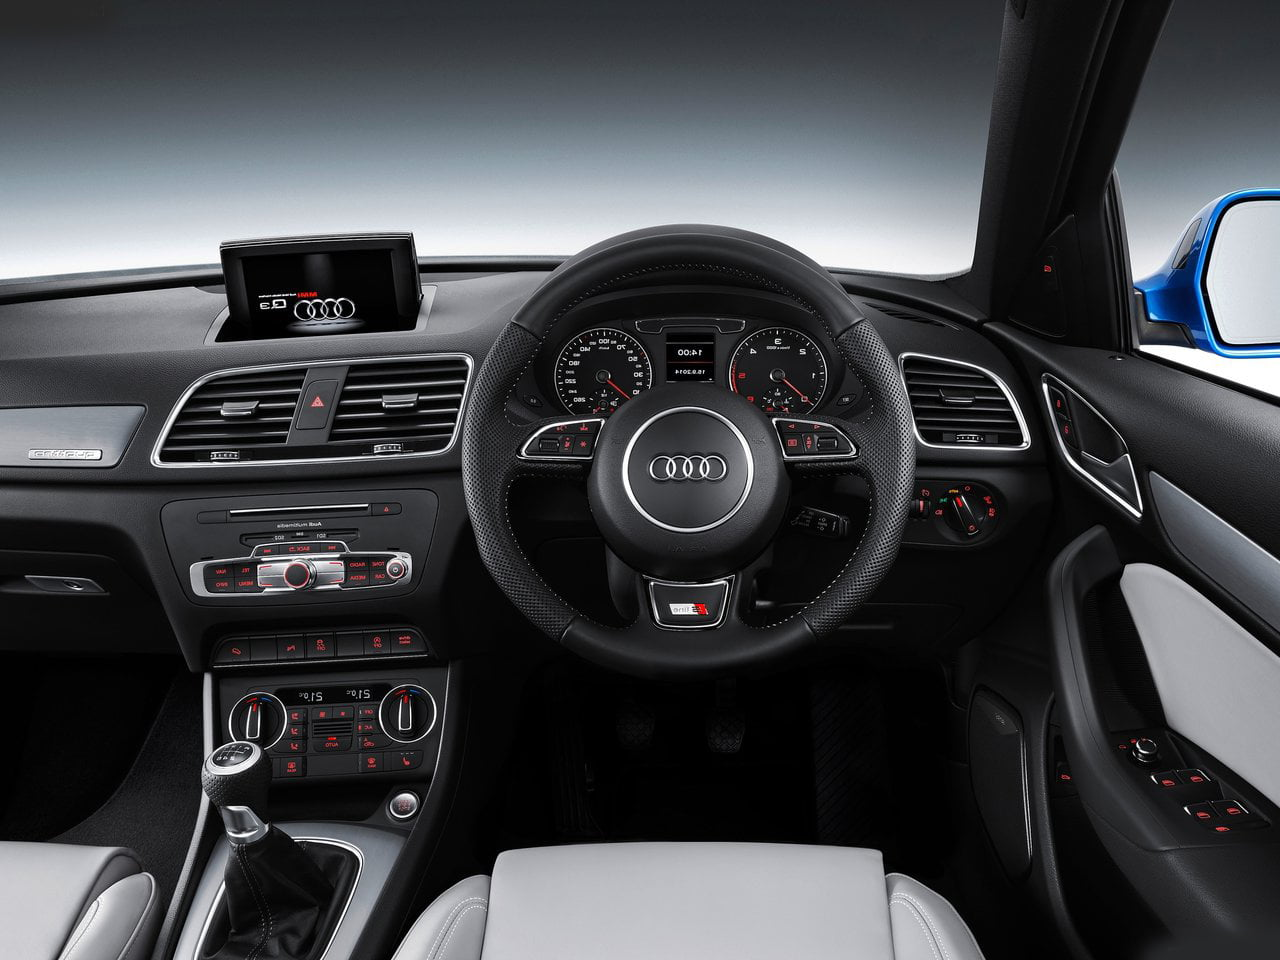 Model Audi Q India Launch Details Price Pics Specs - Audi car 2015 price